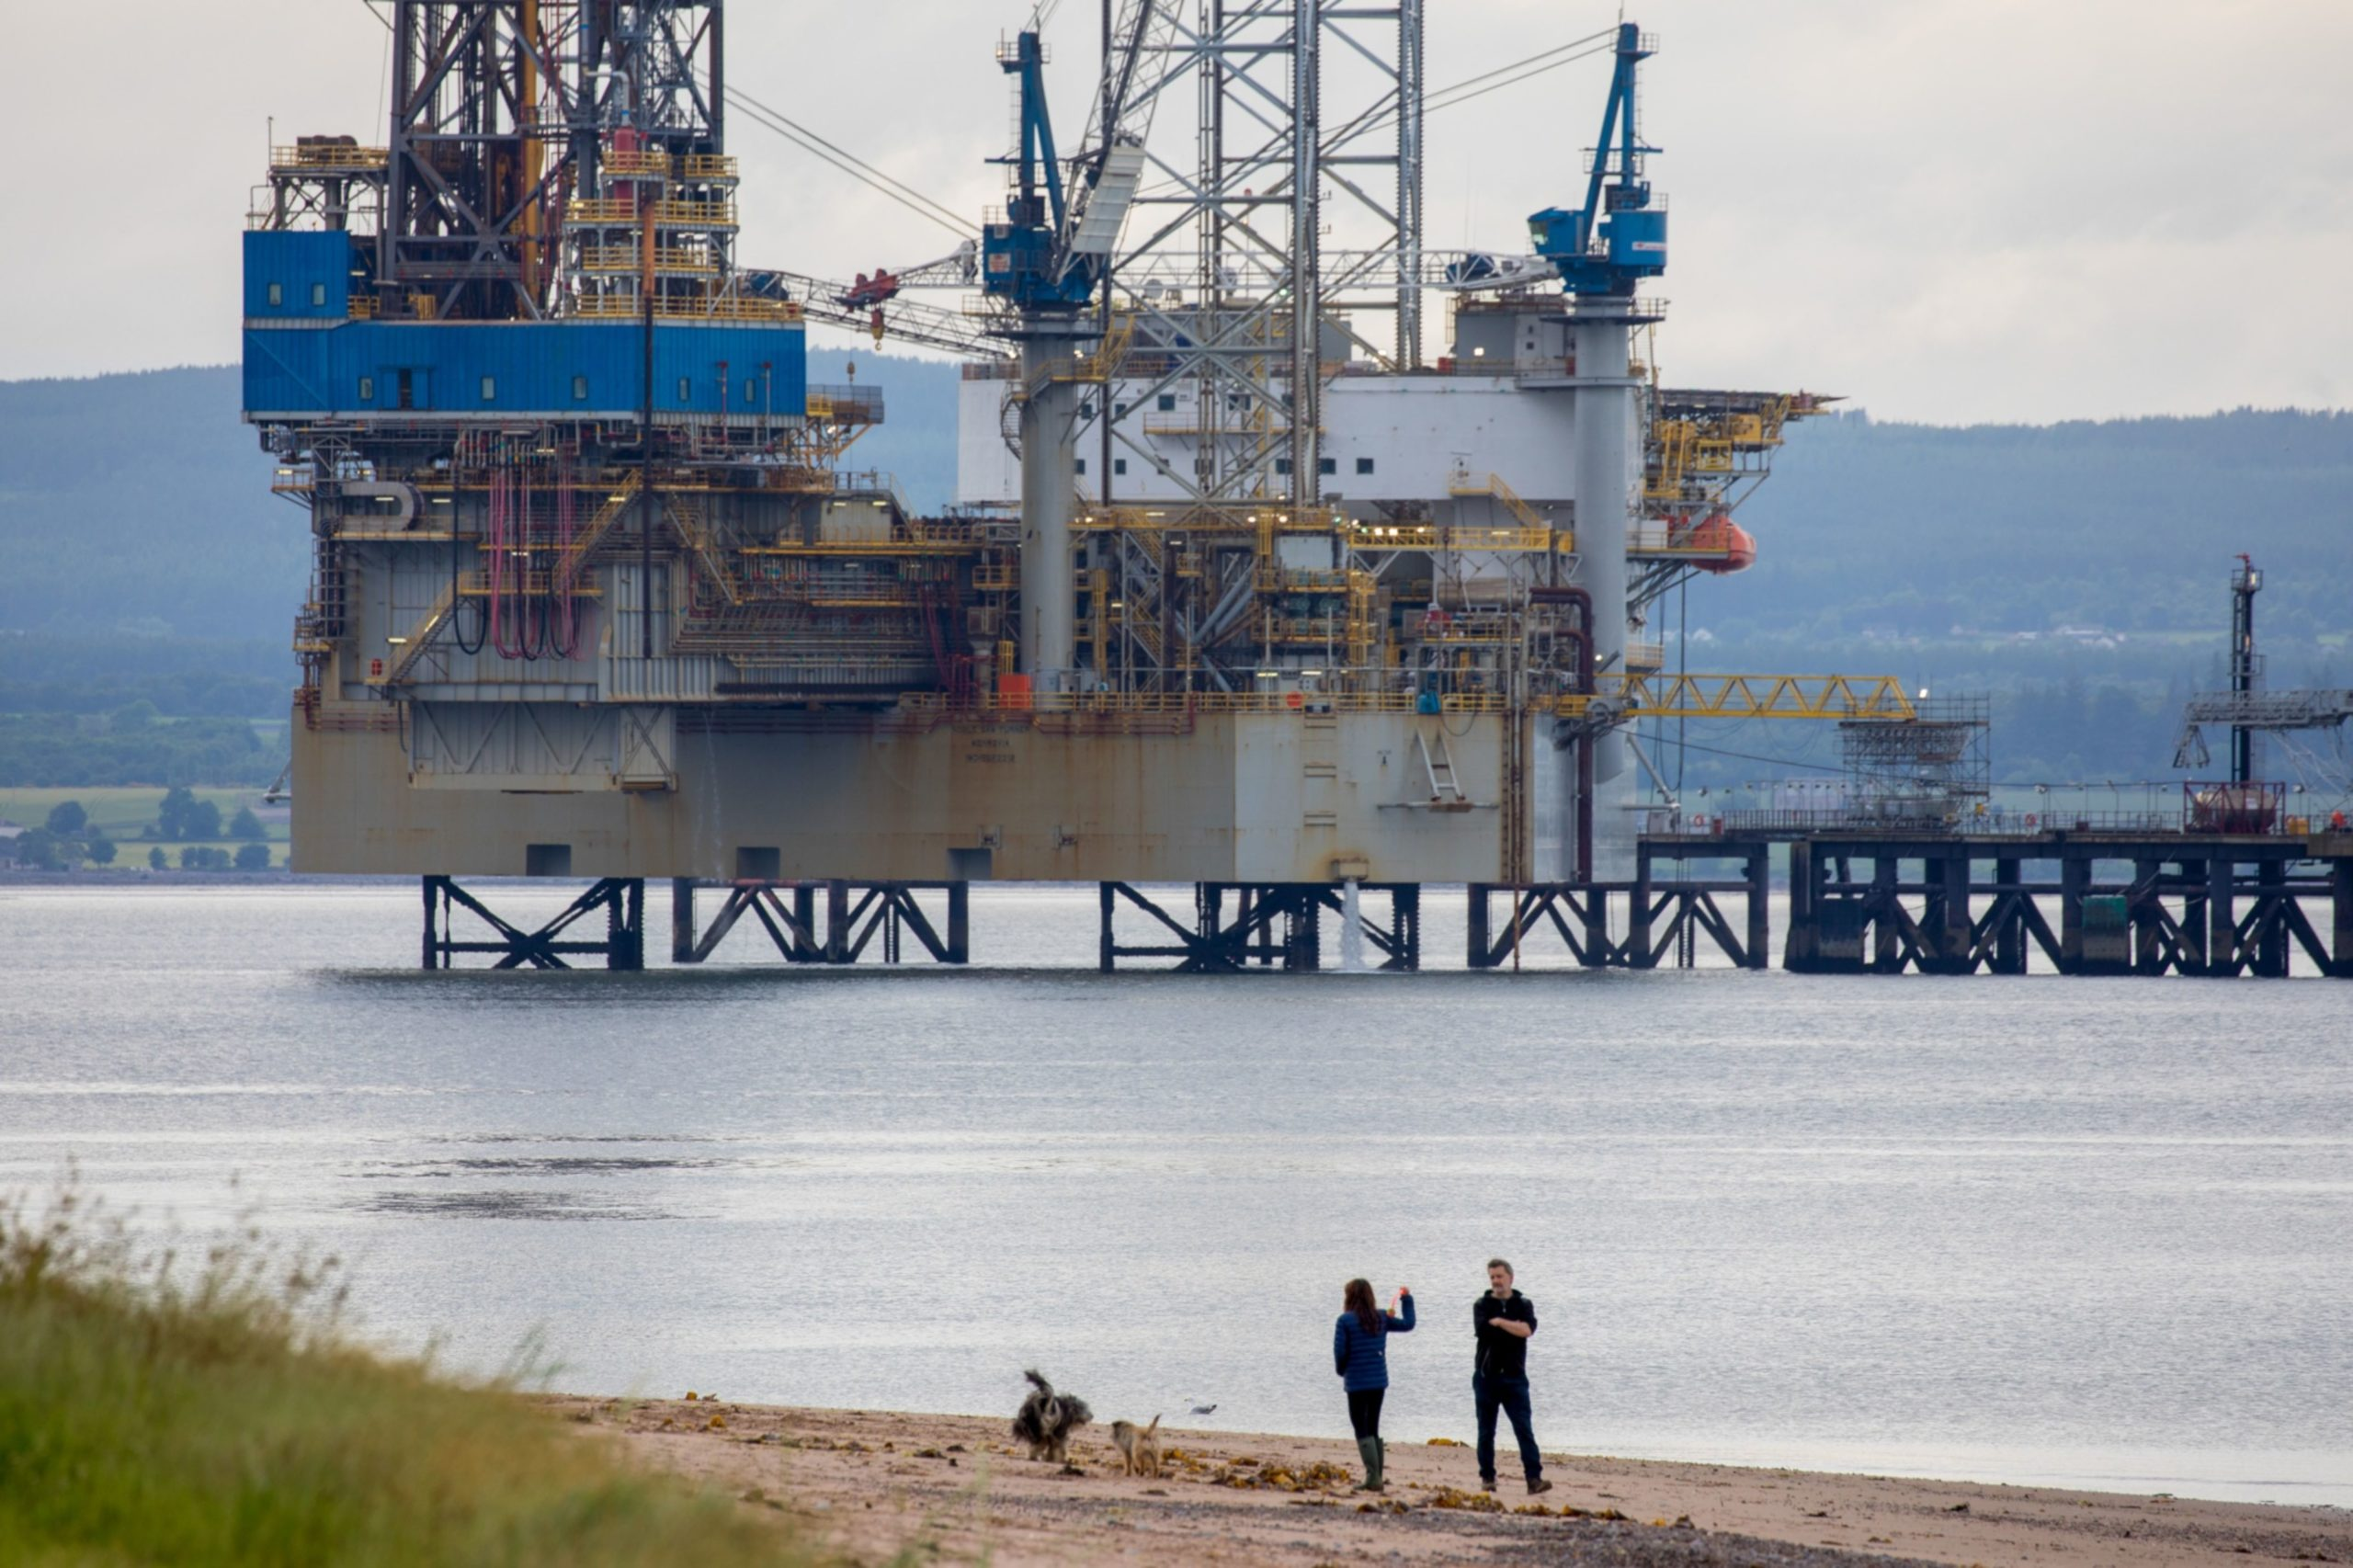 Pedestrians walk along a beach near the Noble Sam Turner jack-up drilling rig, operated by Noble Corp., in Cromarty, U.K. Photographer: Jason Alden/Bloomberg